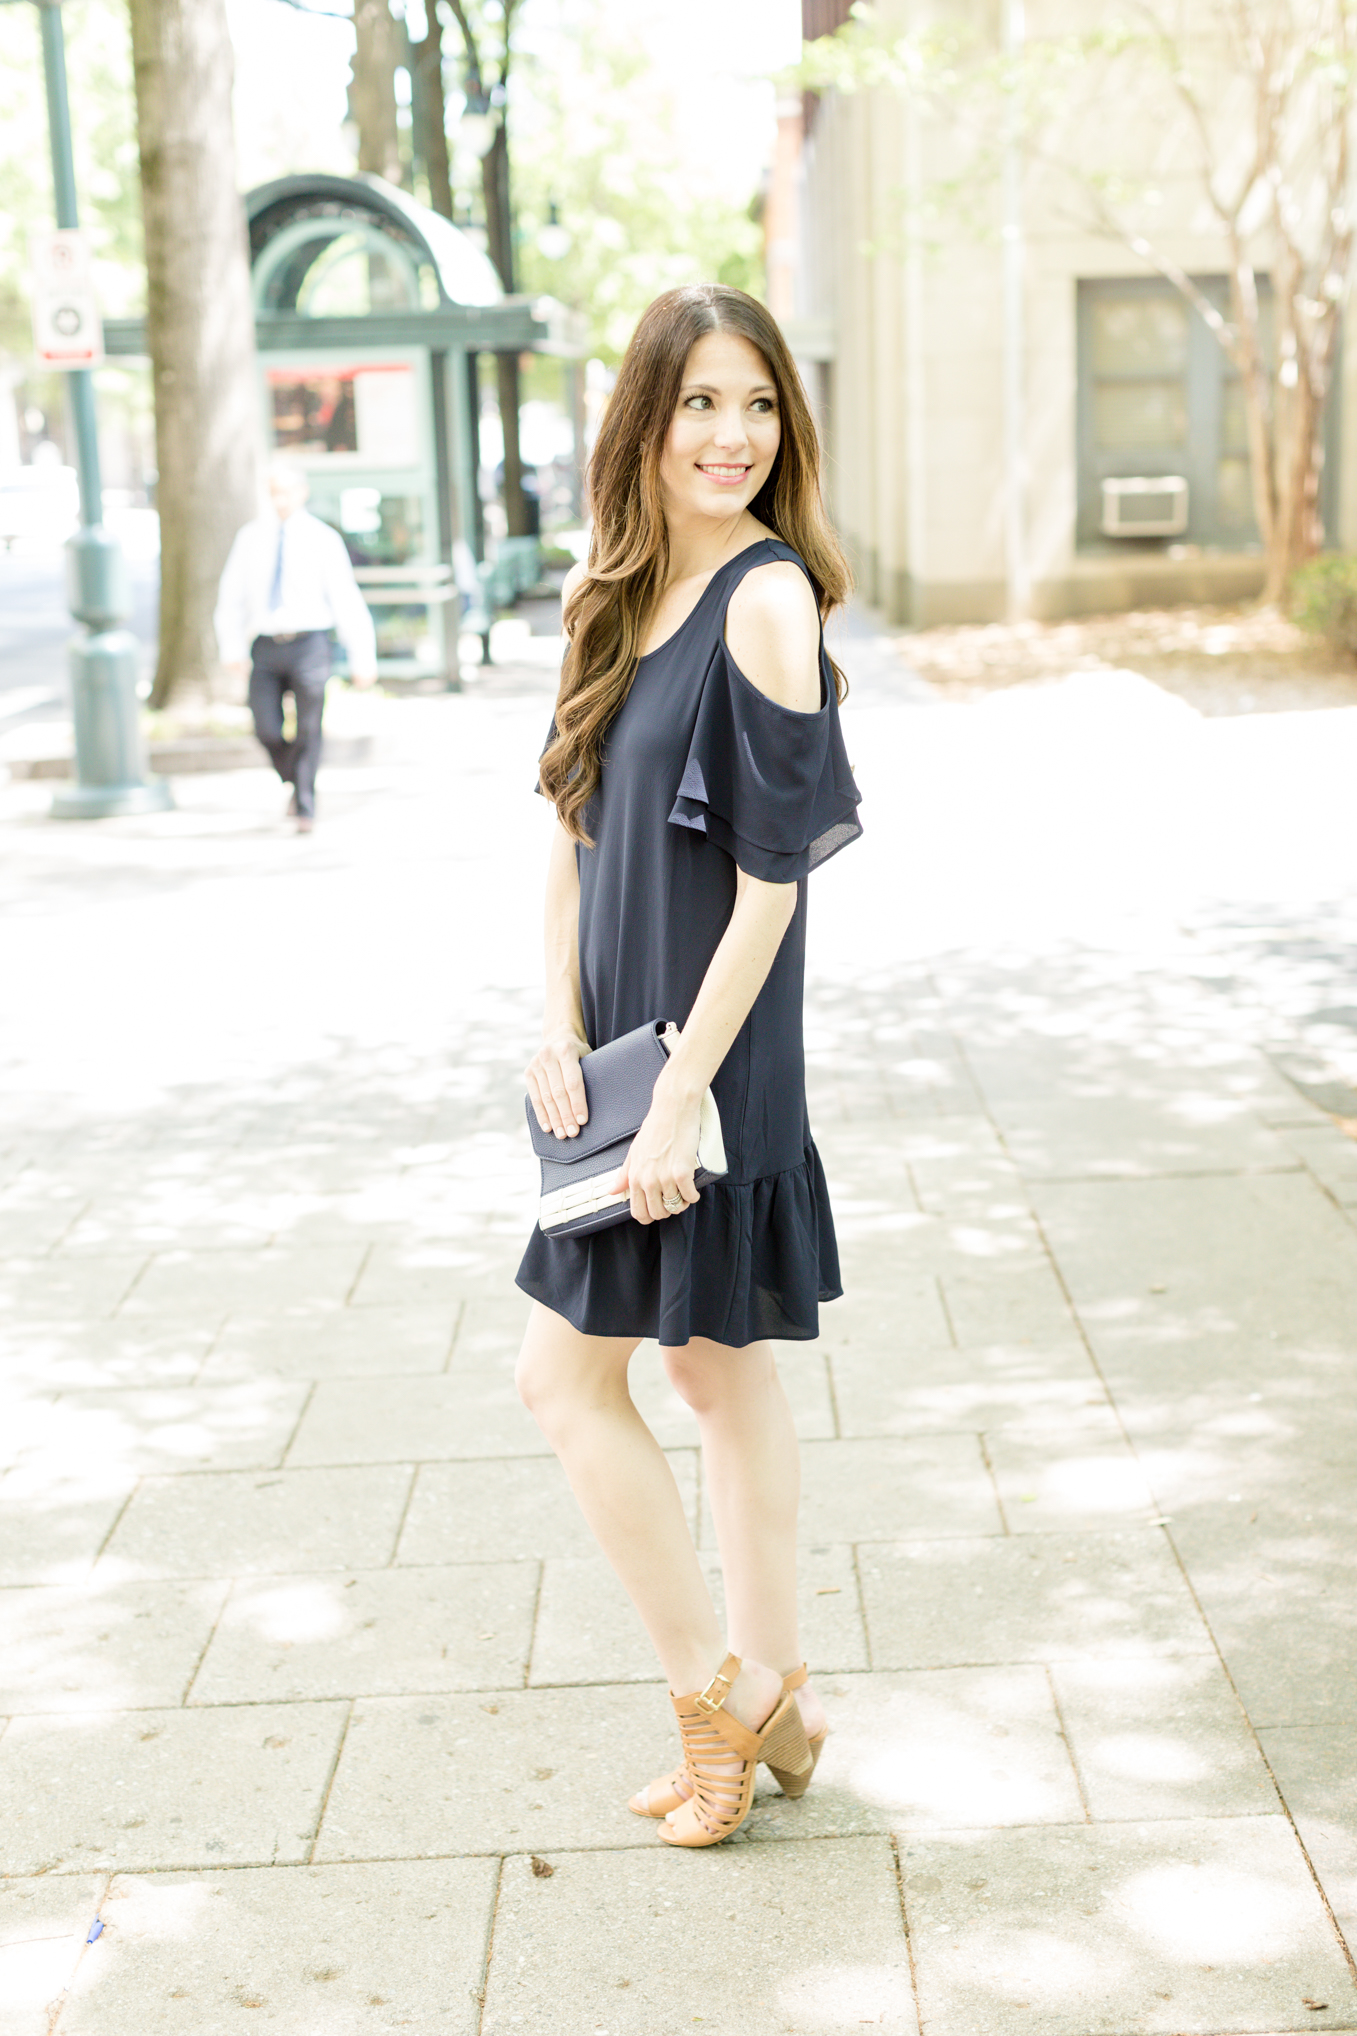 Little Navy Dress | Lifestyle blogger Elle Bowes shares a summer style twist on the LBD